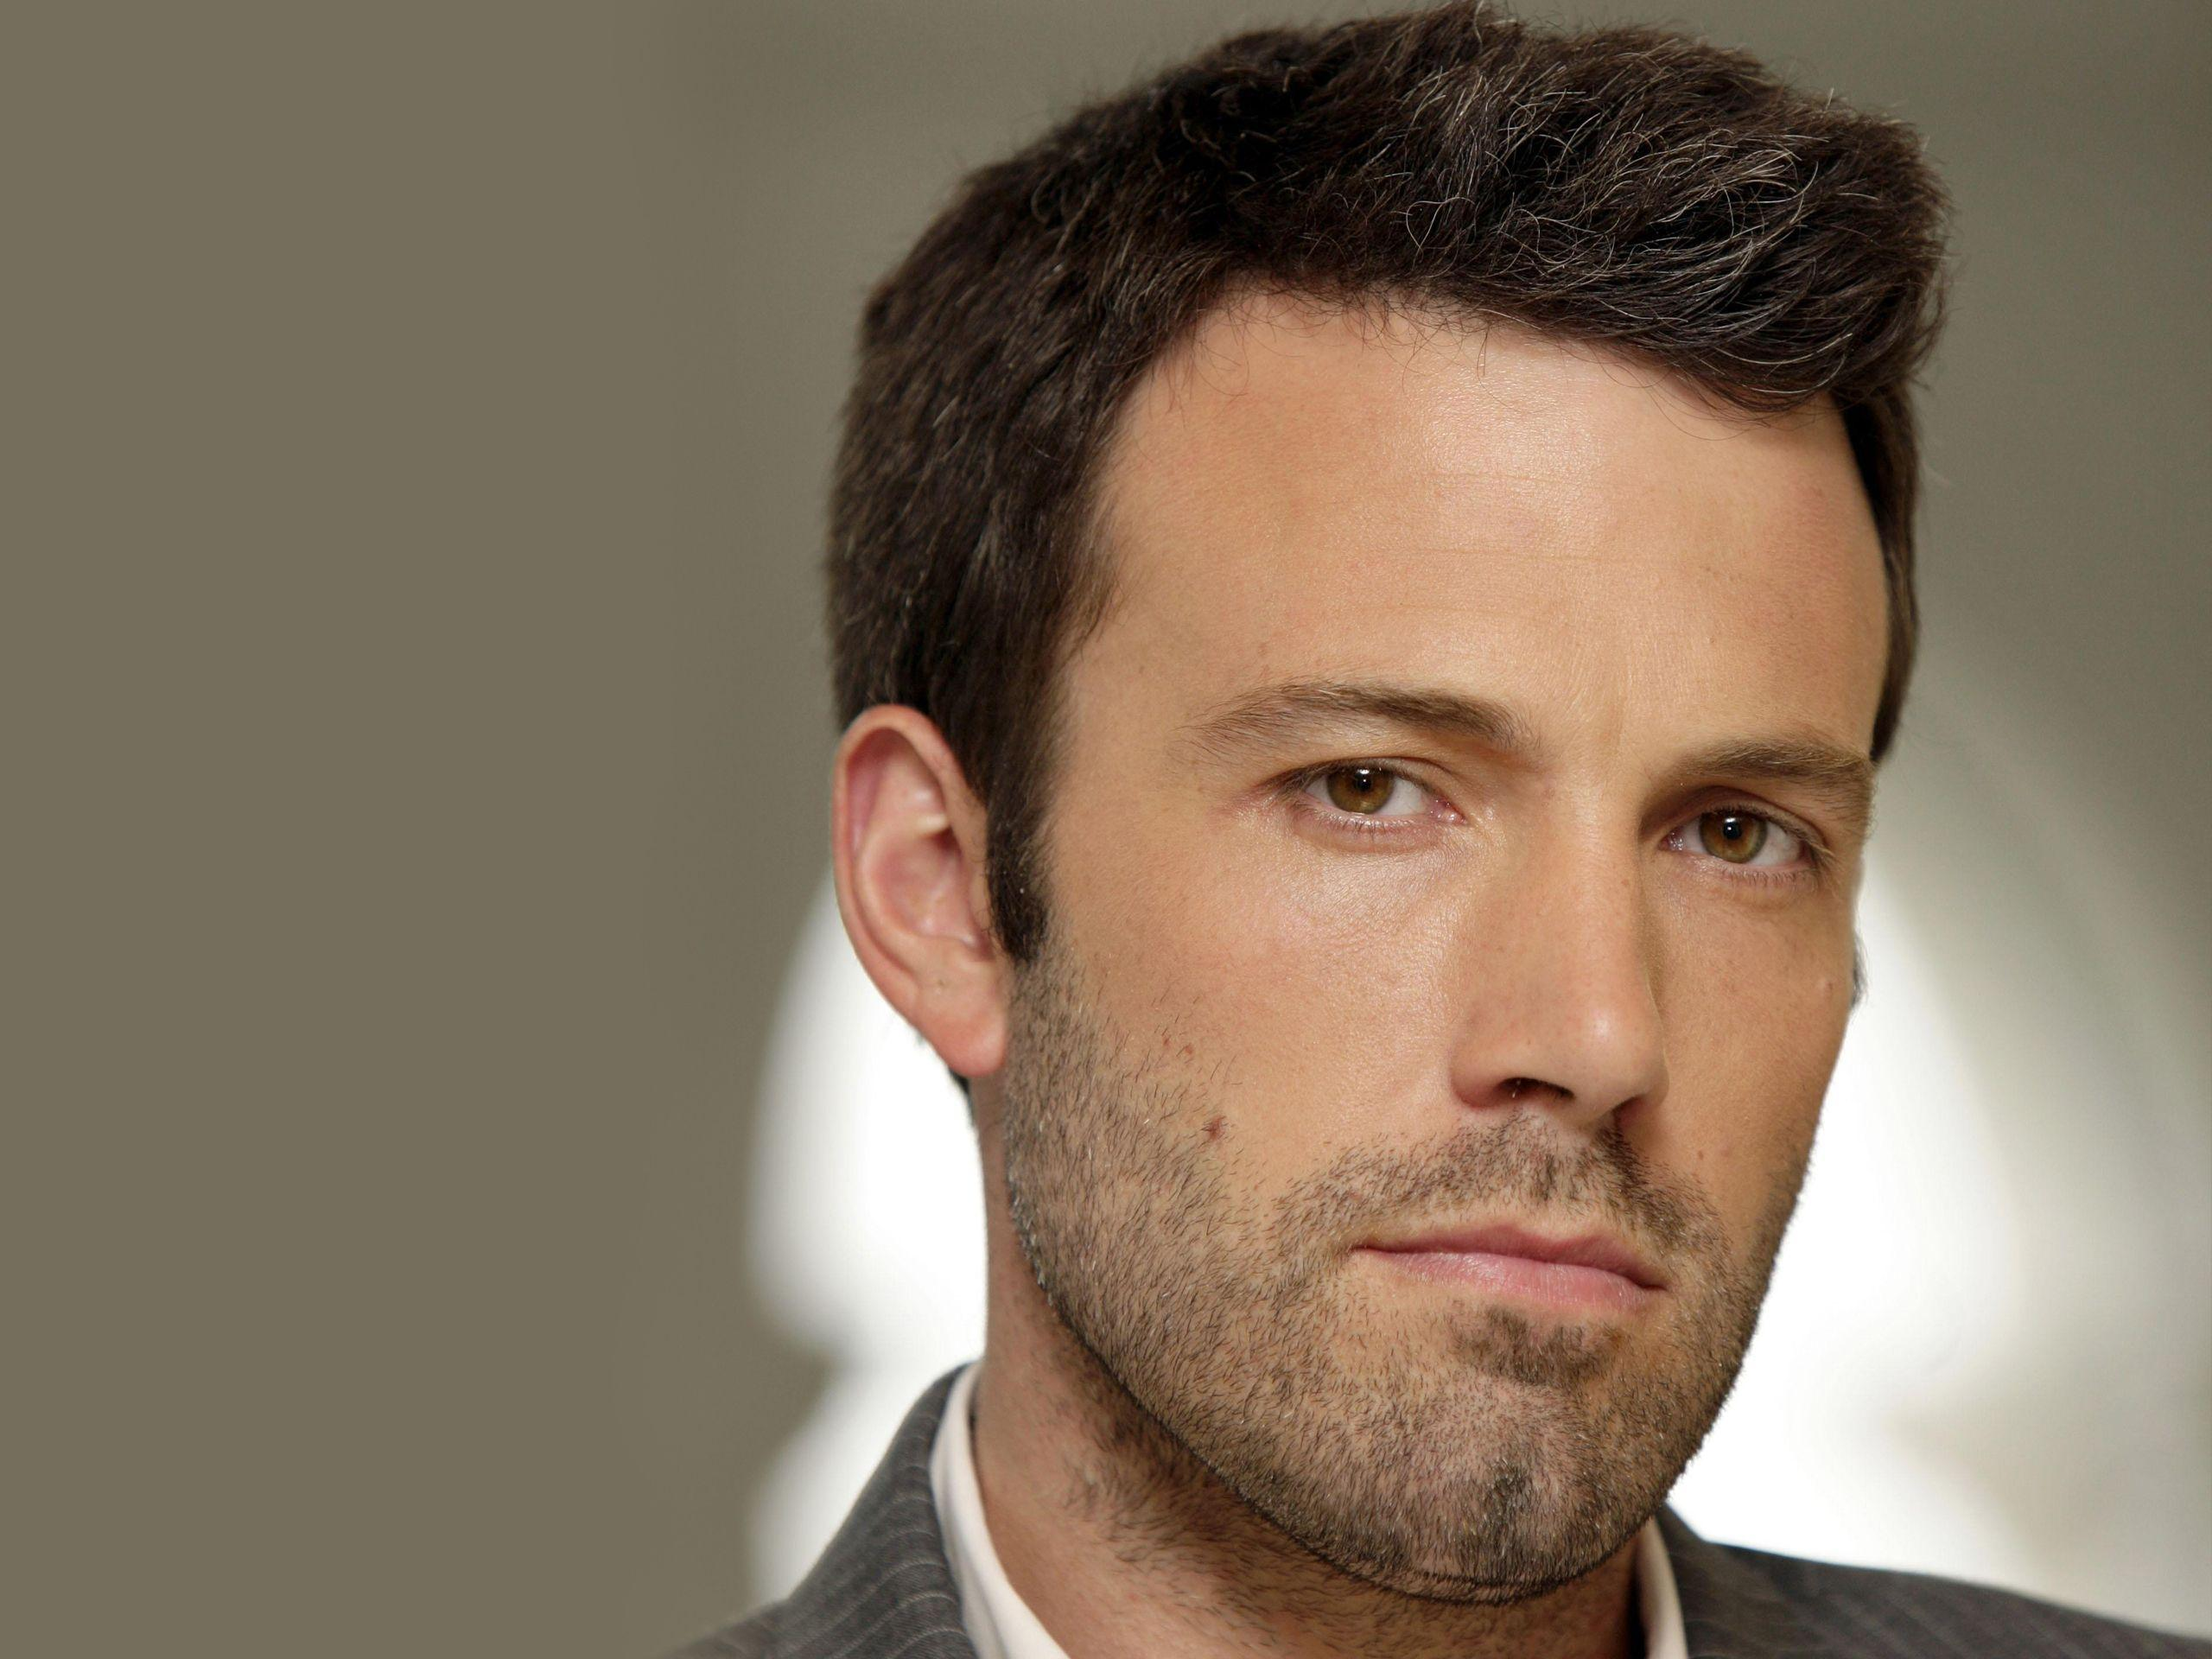 Awesome Ben Affleck Pic